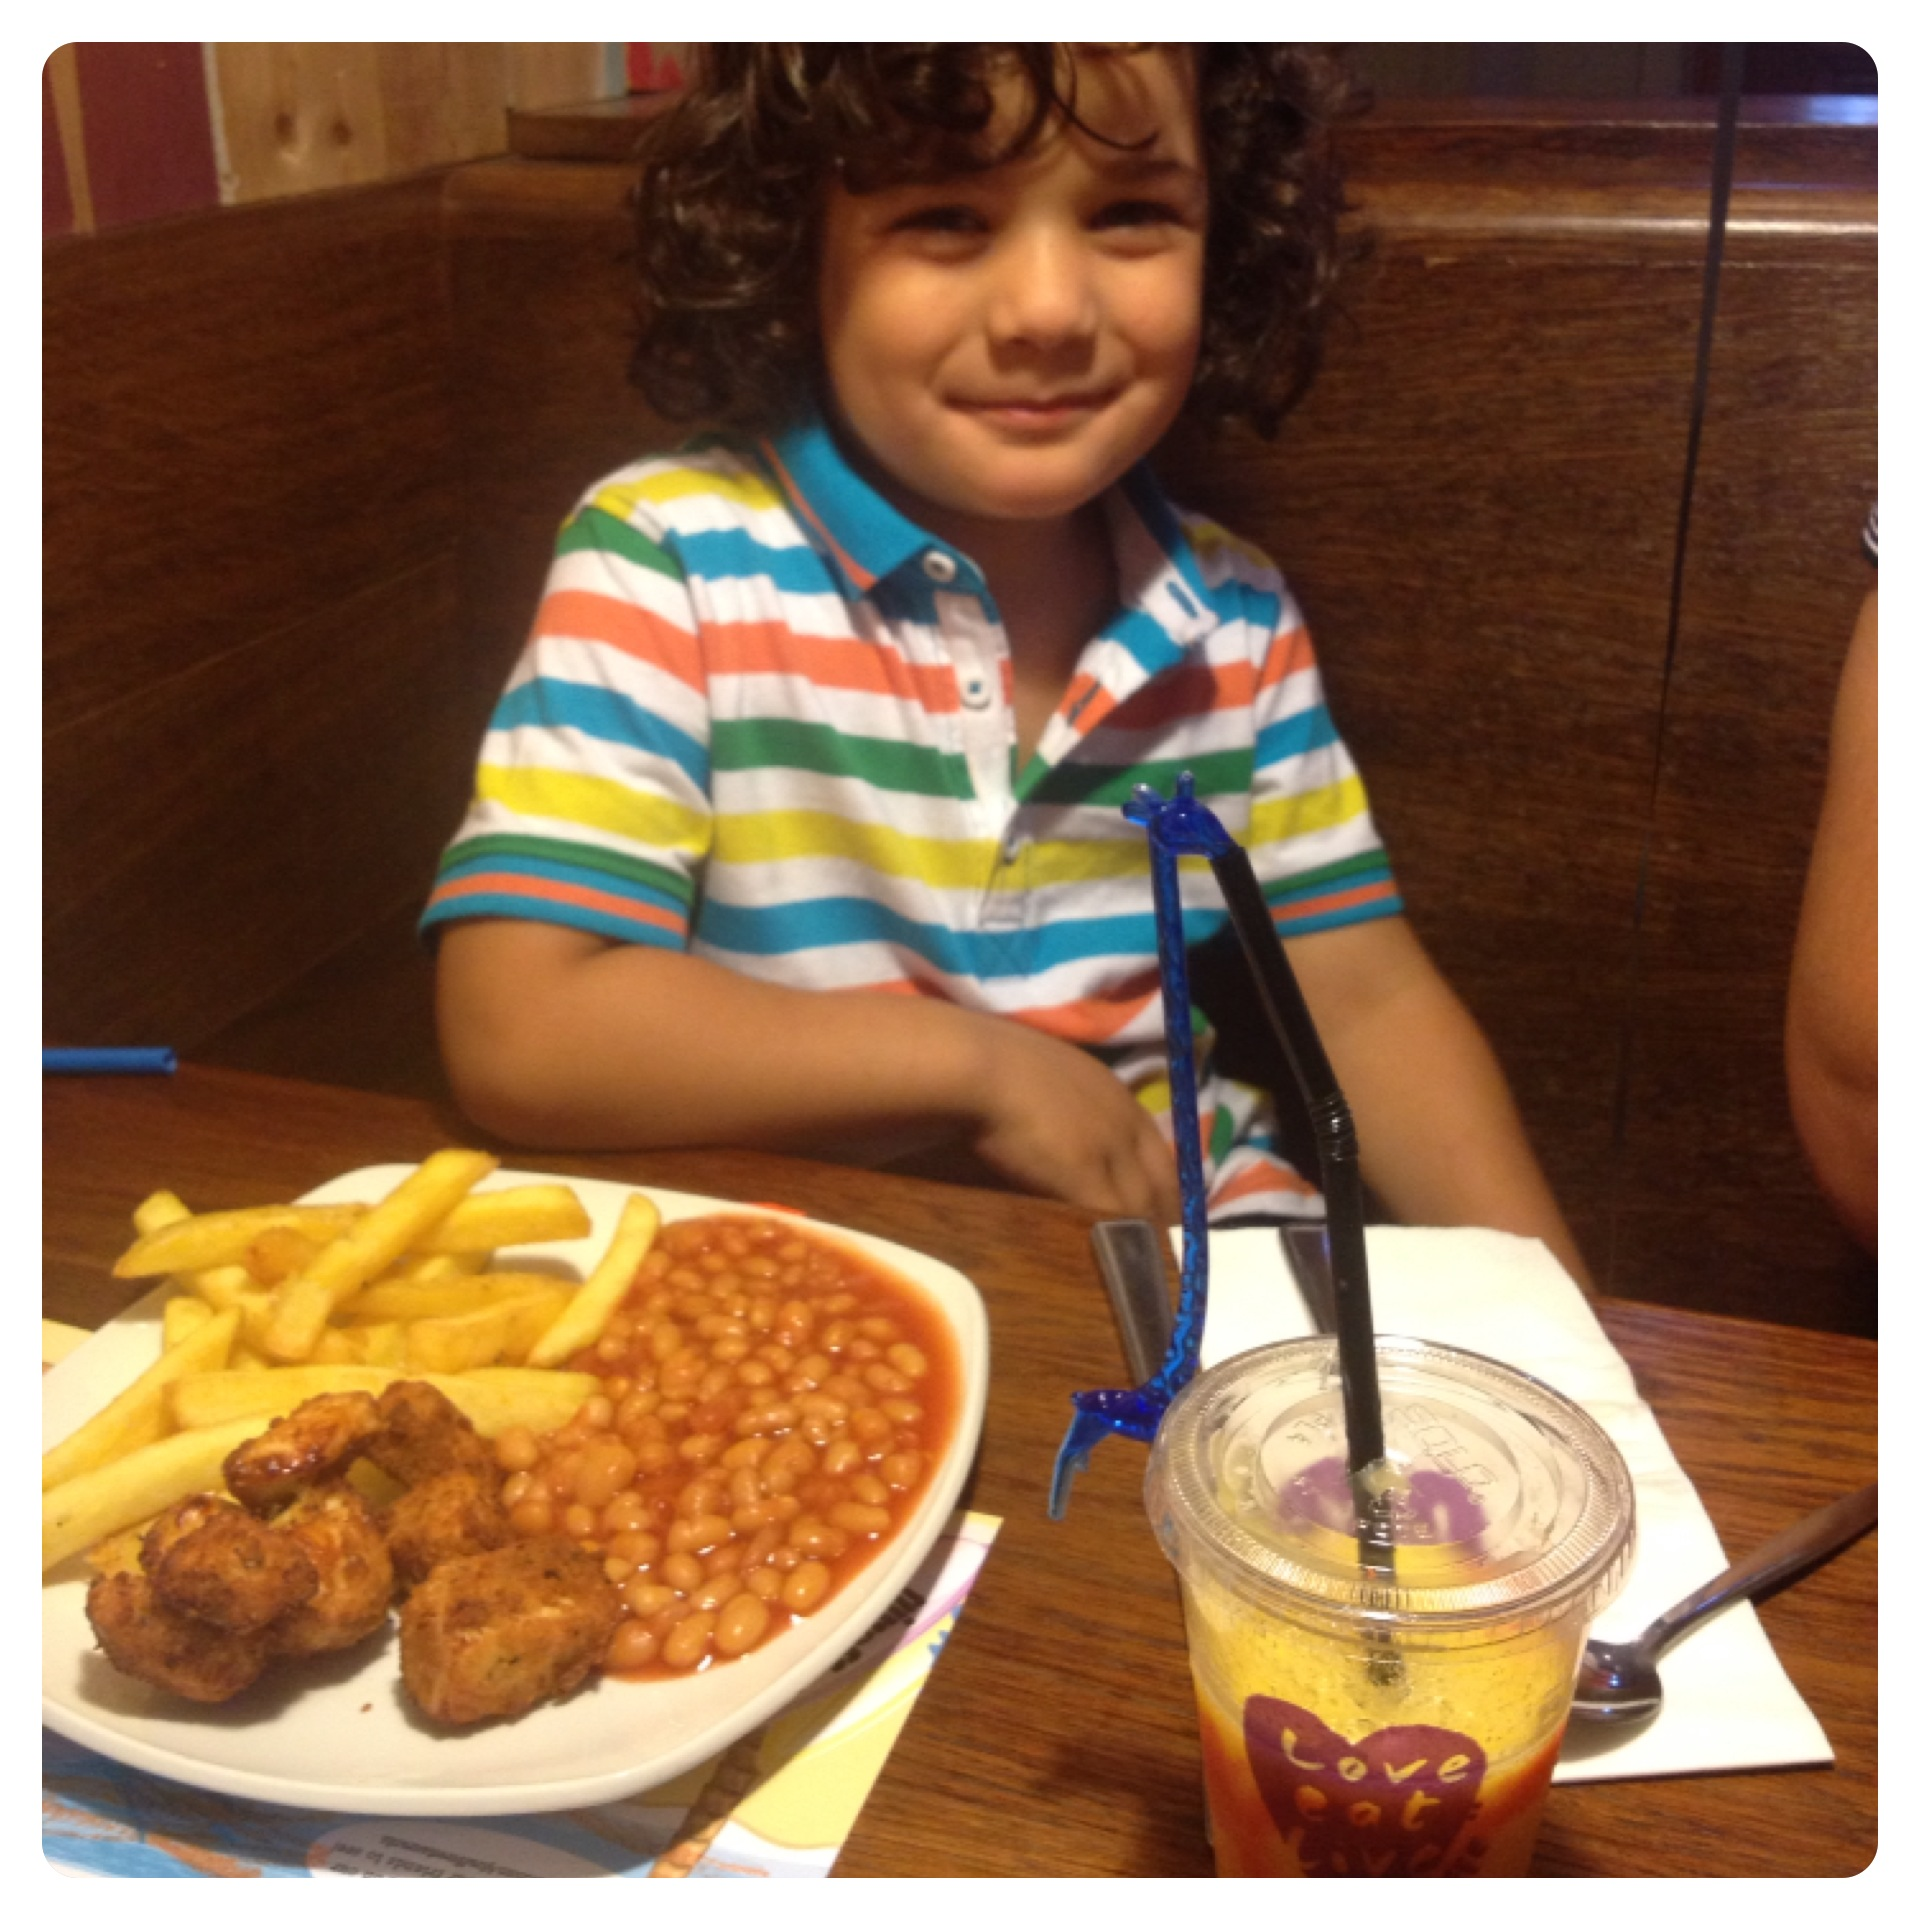 Kids Meal at Giraffe Restaurant